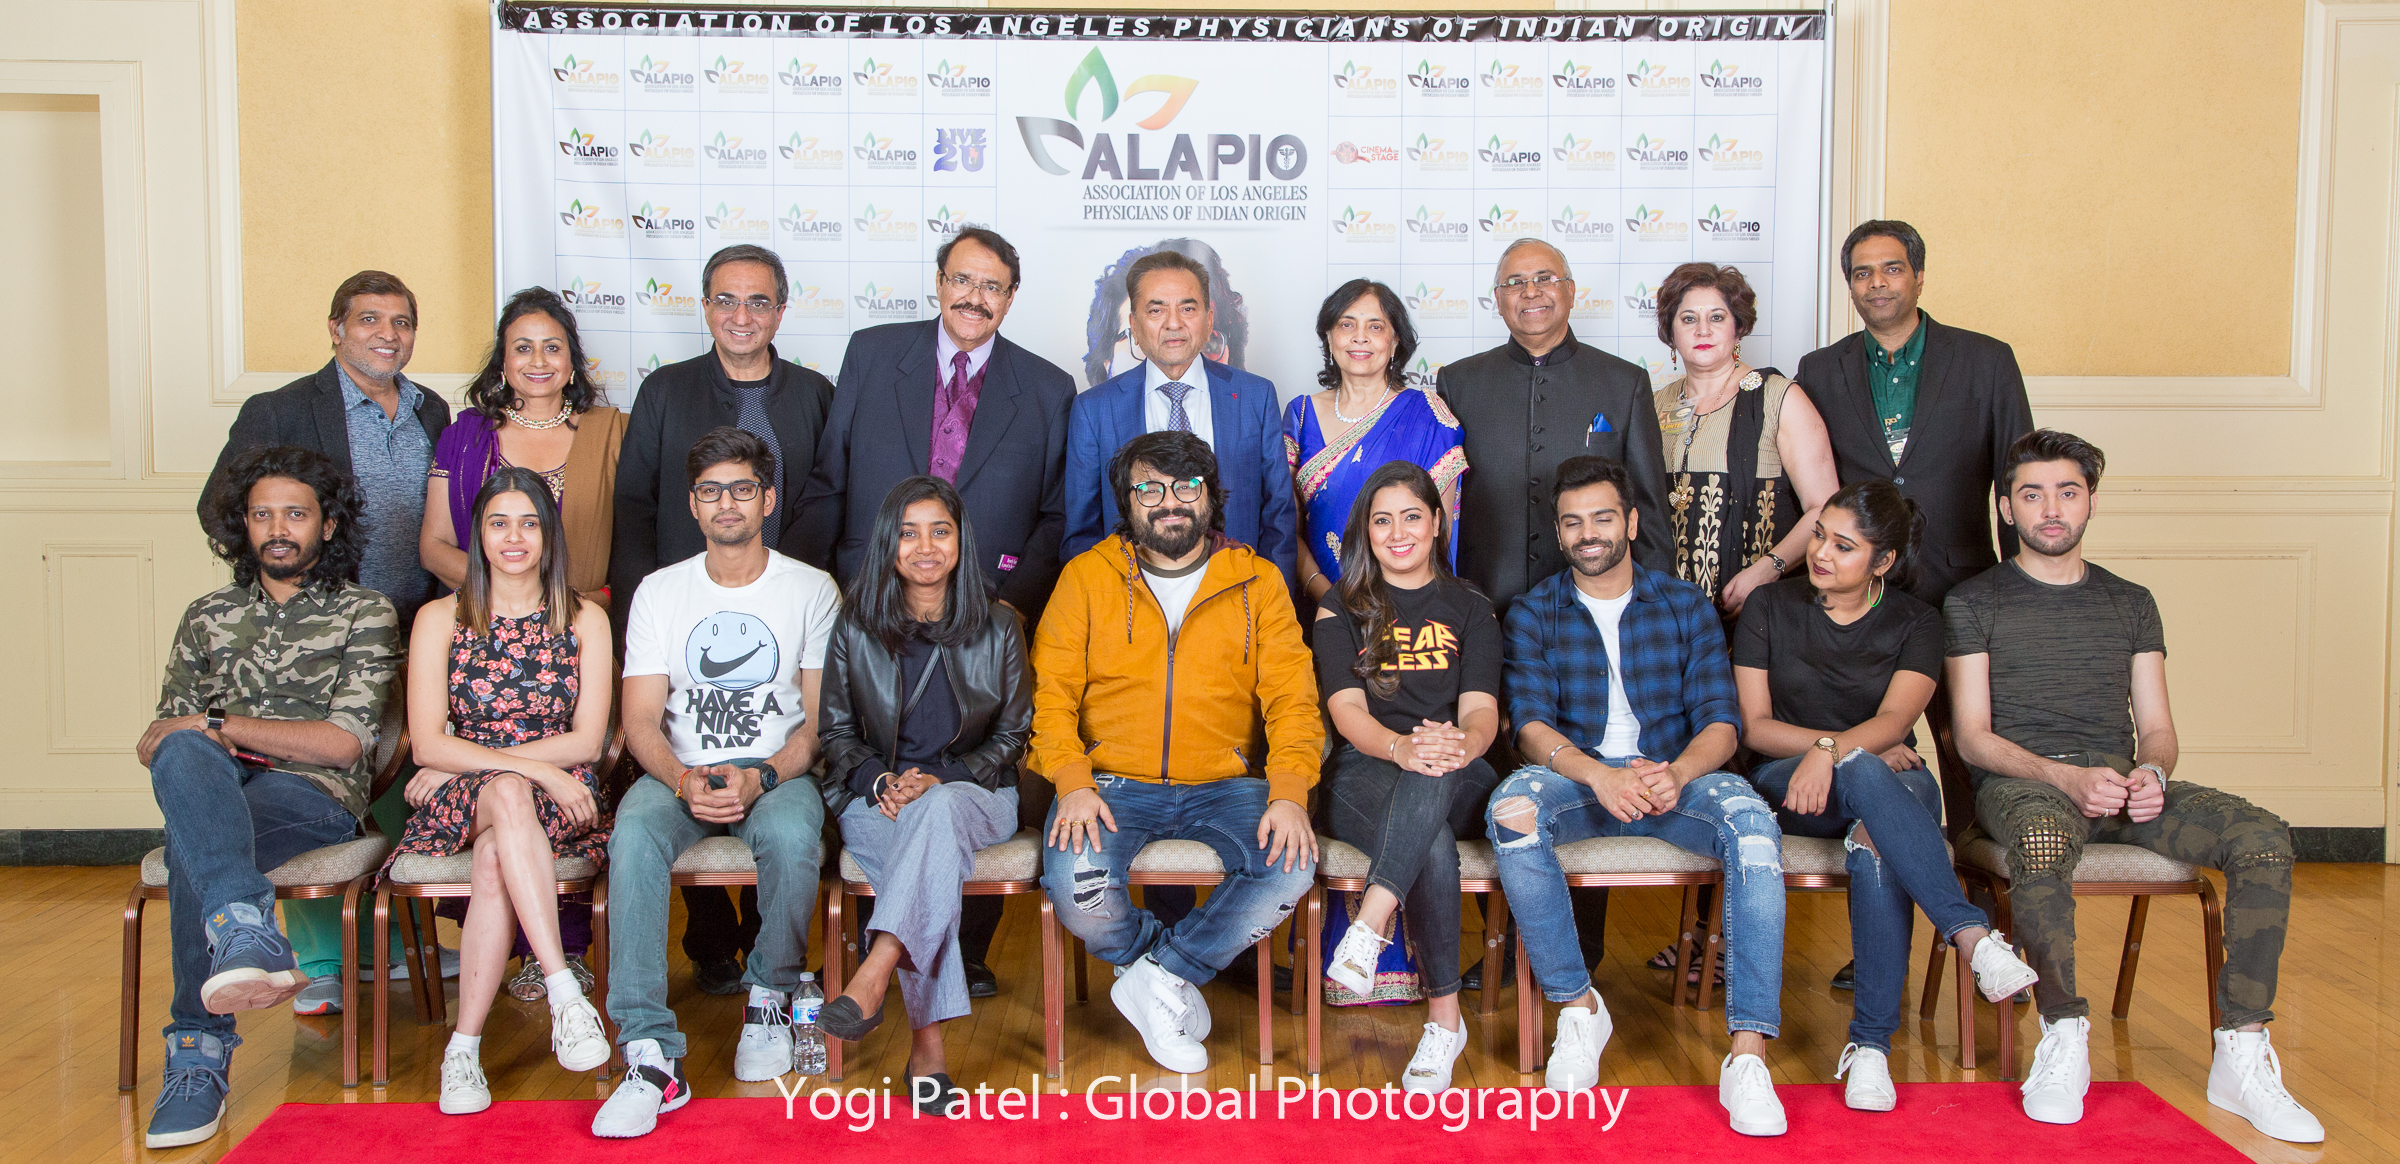 Yogi Patel - Global Photography0X2B2613.jpg